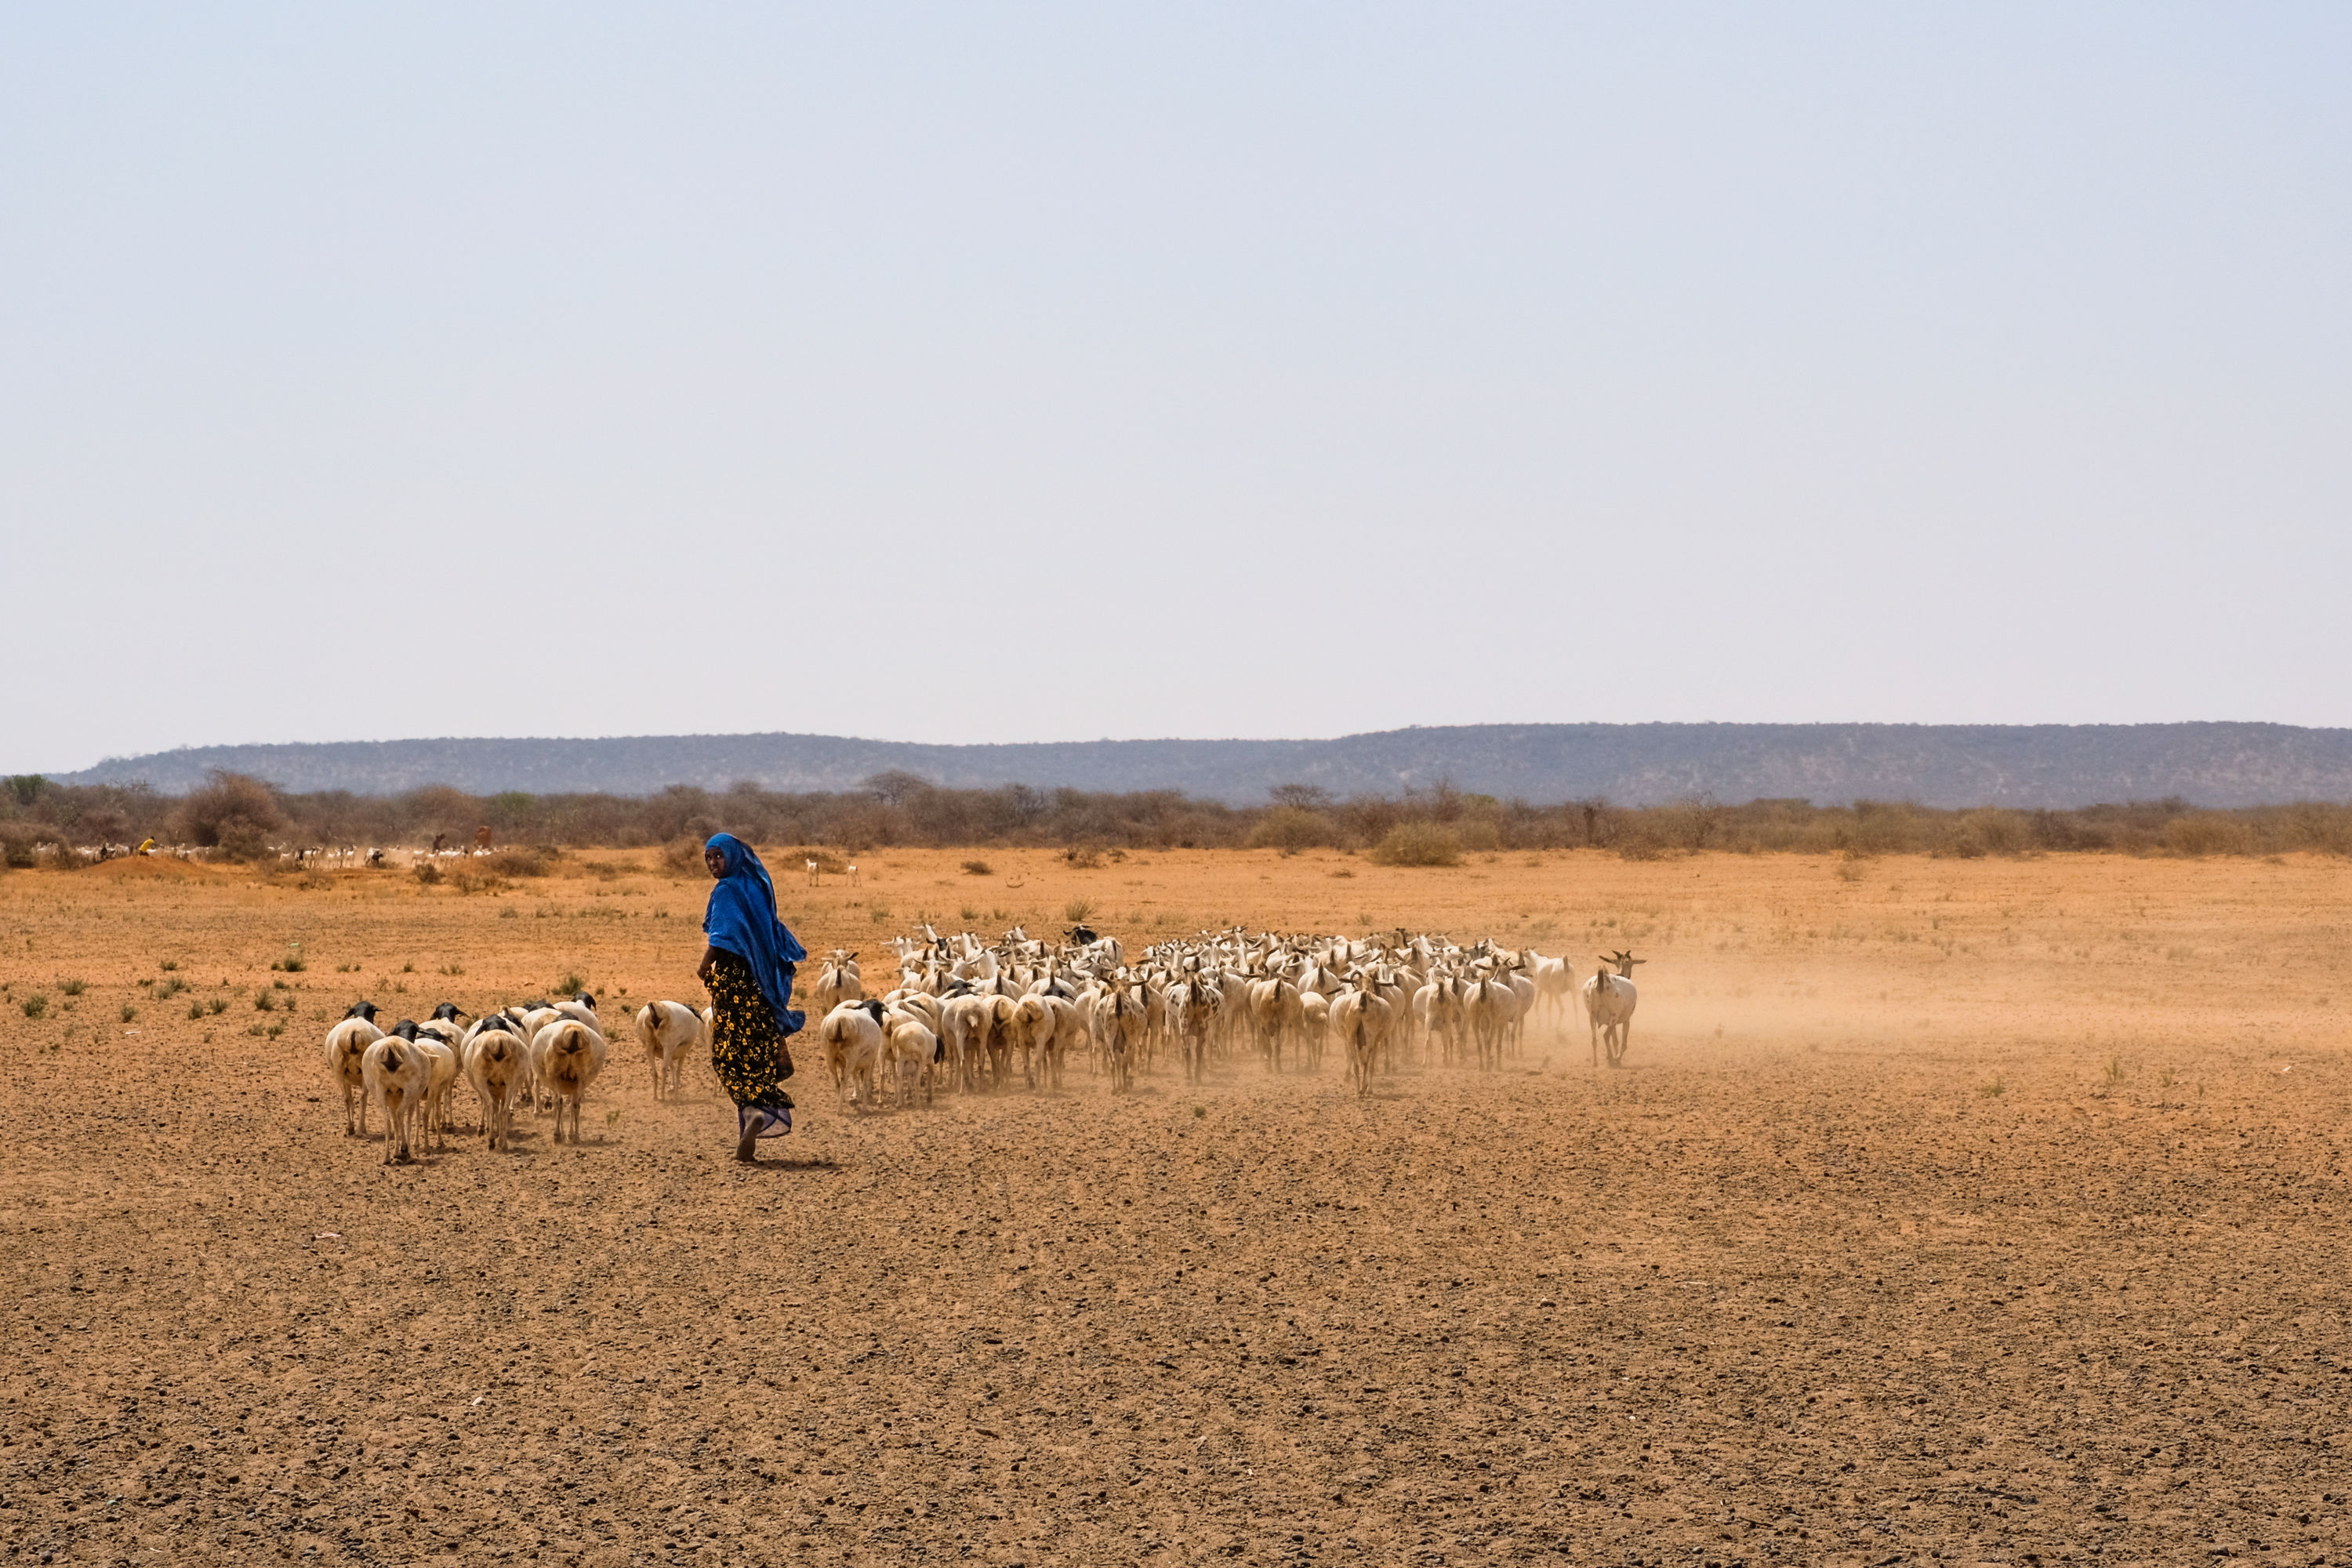 Woman with herd of cattle on steppe-like open field